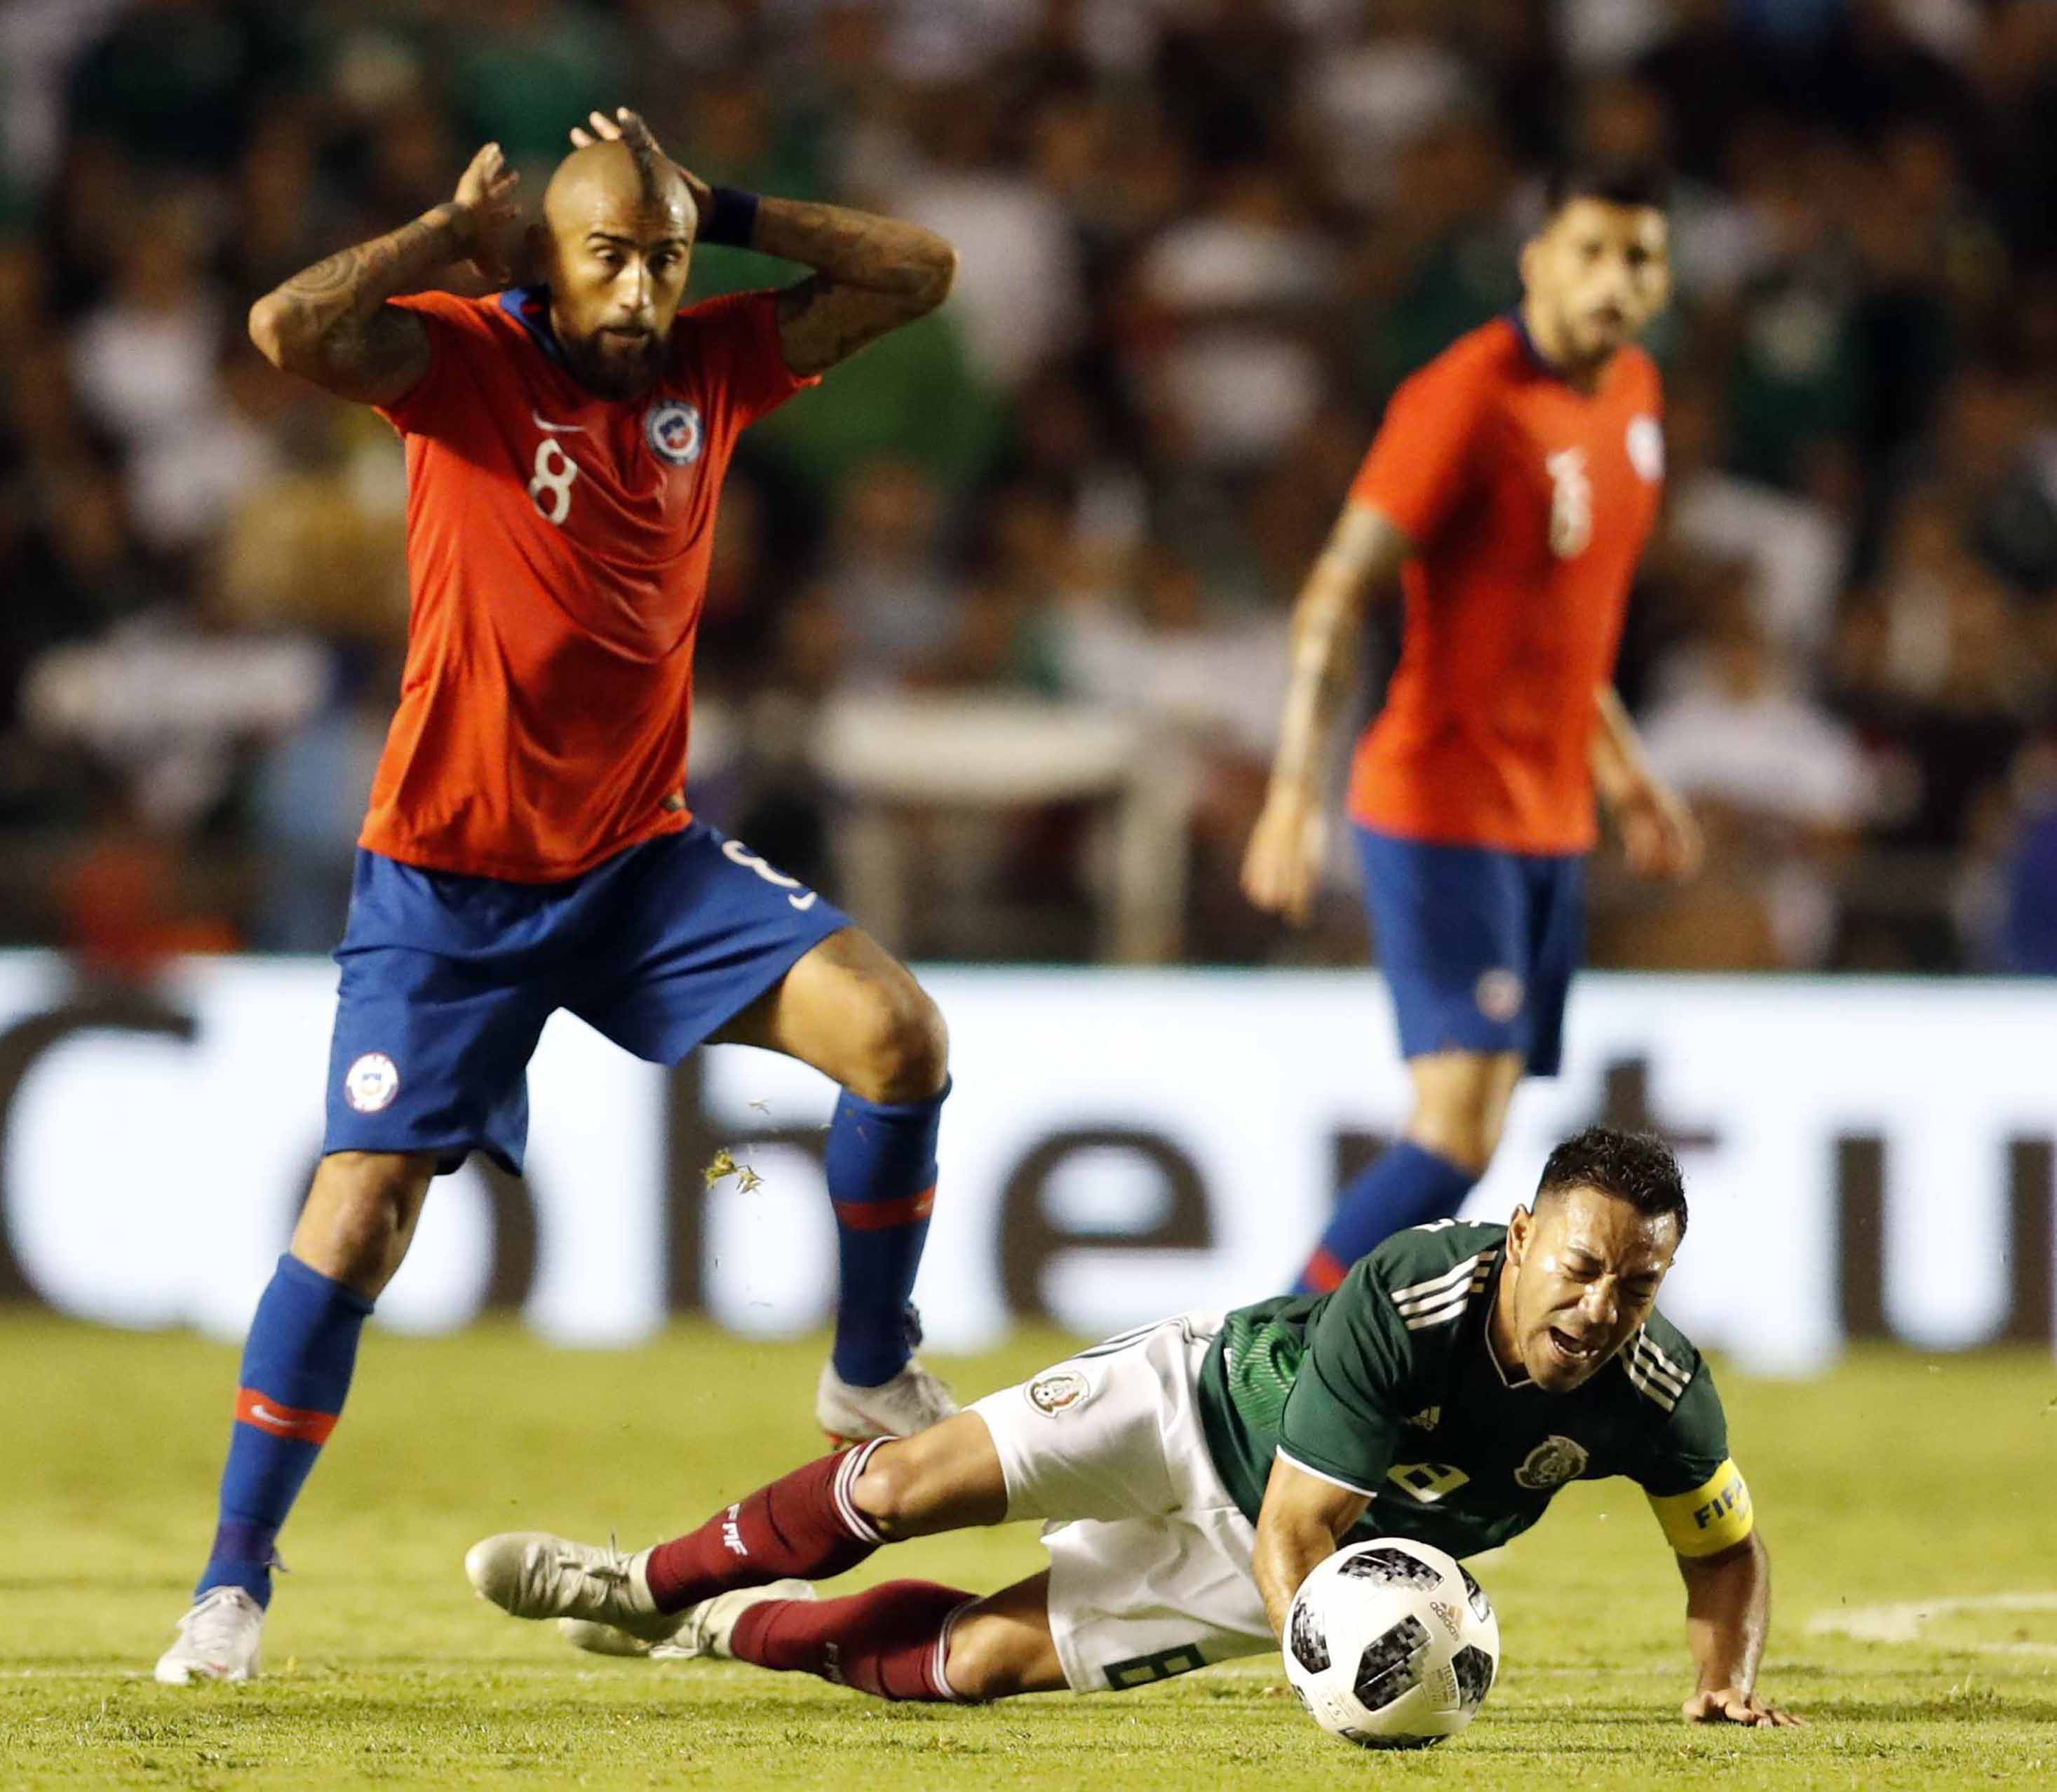 Chile's Arturo Vidal (left) fouls Mexico's Marco Fabian during a friendly soccer match between Mexico and Chile, in Queretaro, Mexico on Tuesday.